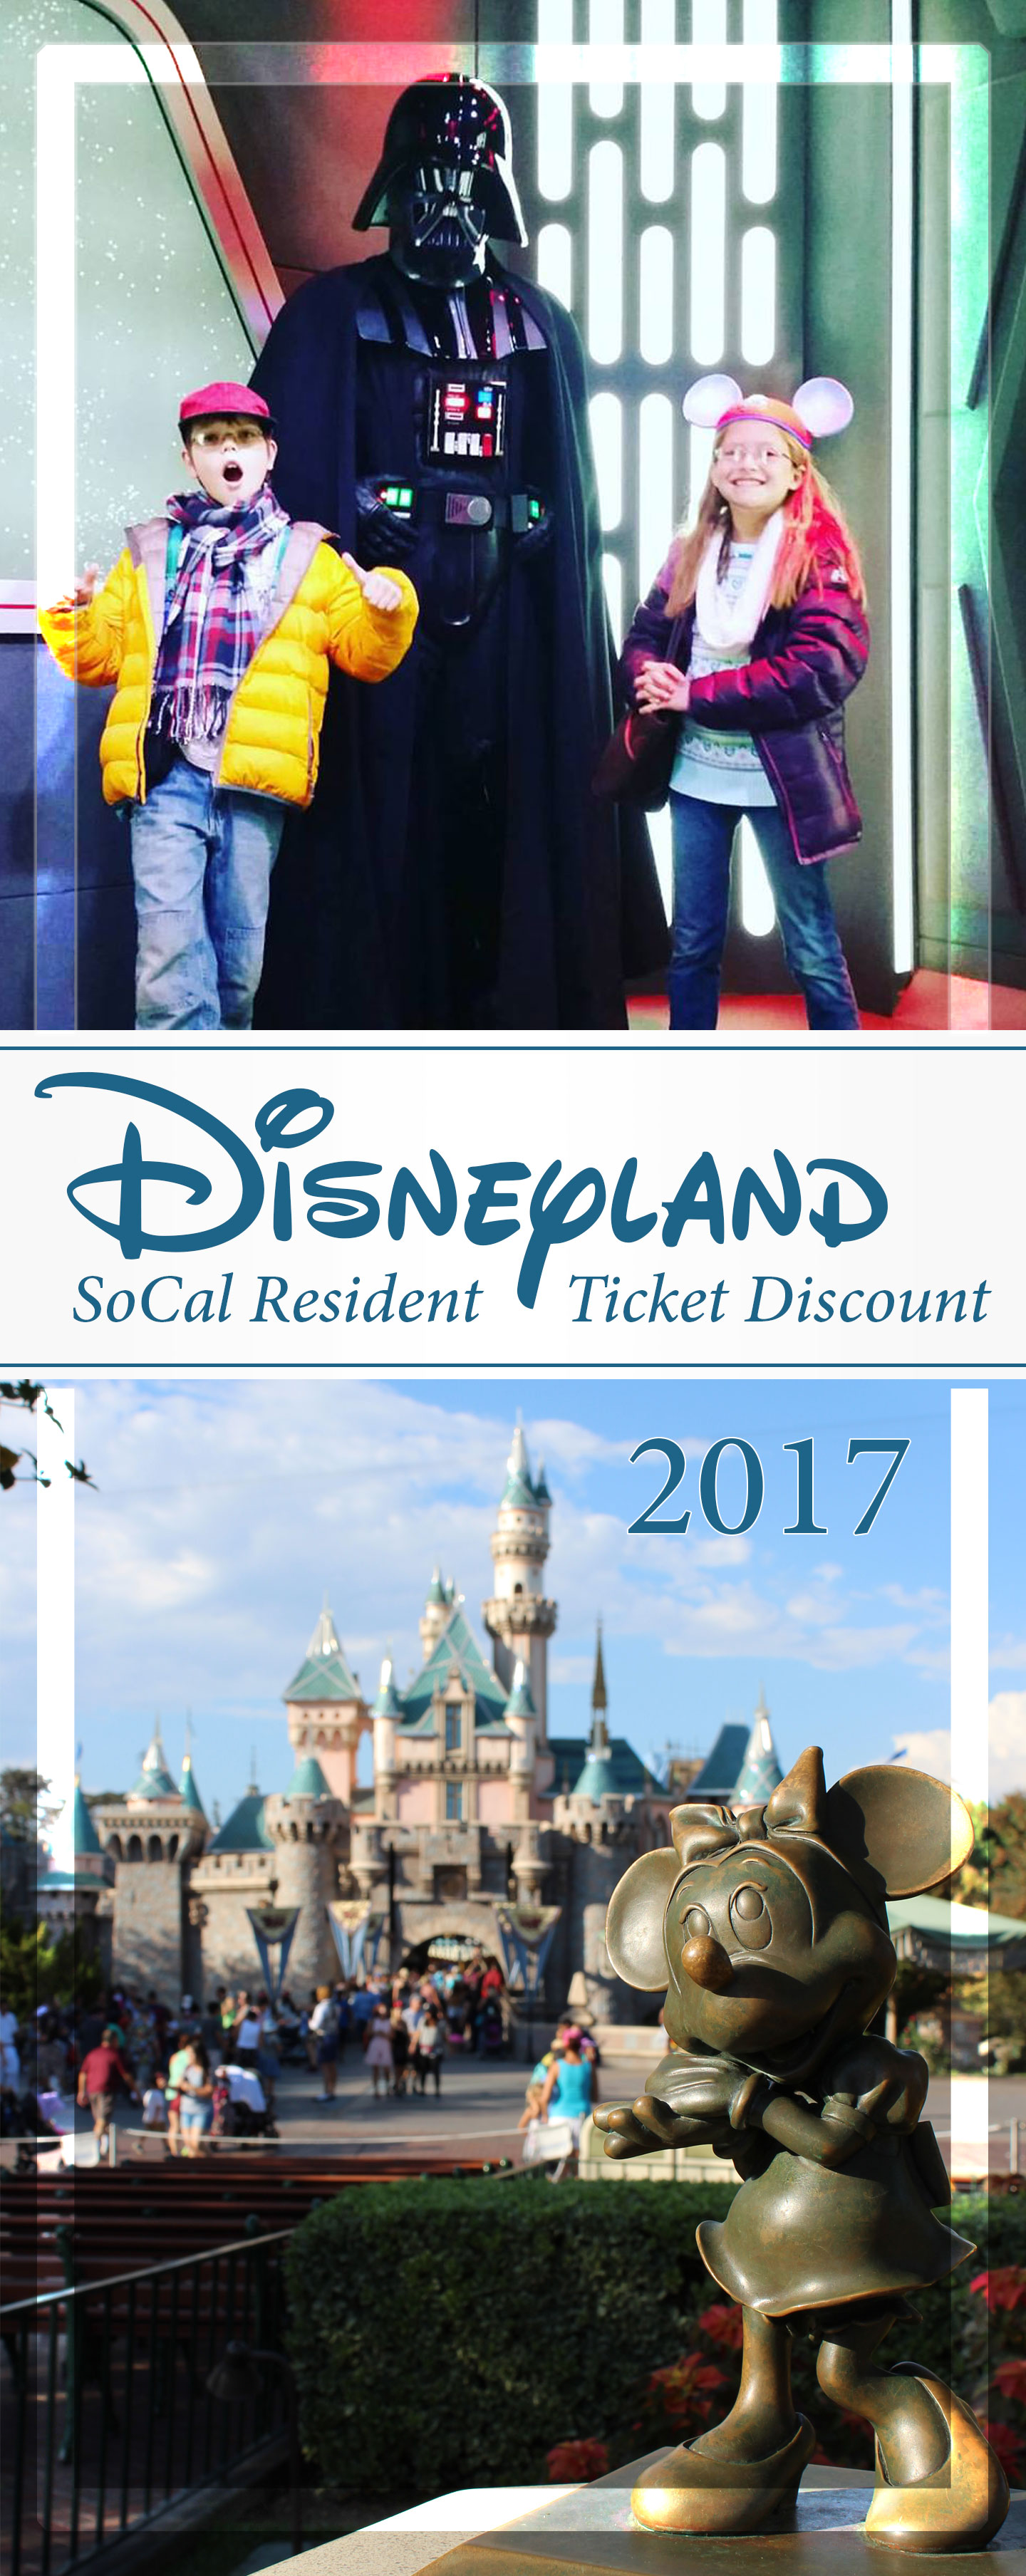 Disneyland Socal Resident Discount Tickets Are Now Available